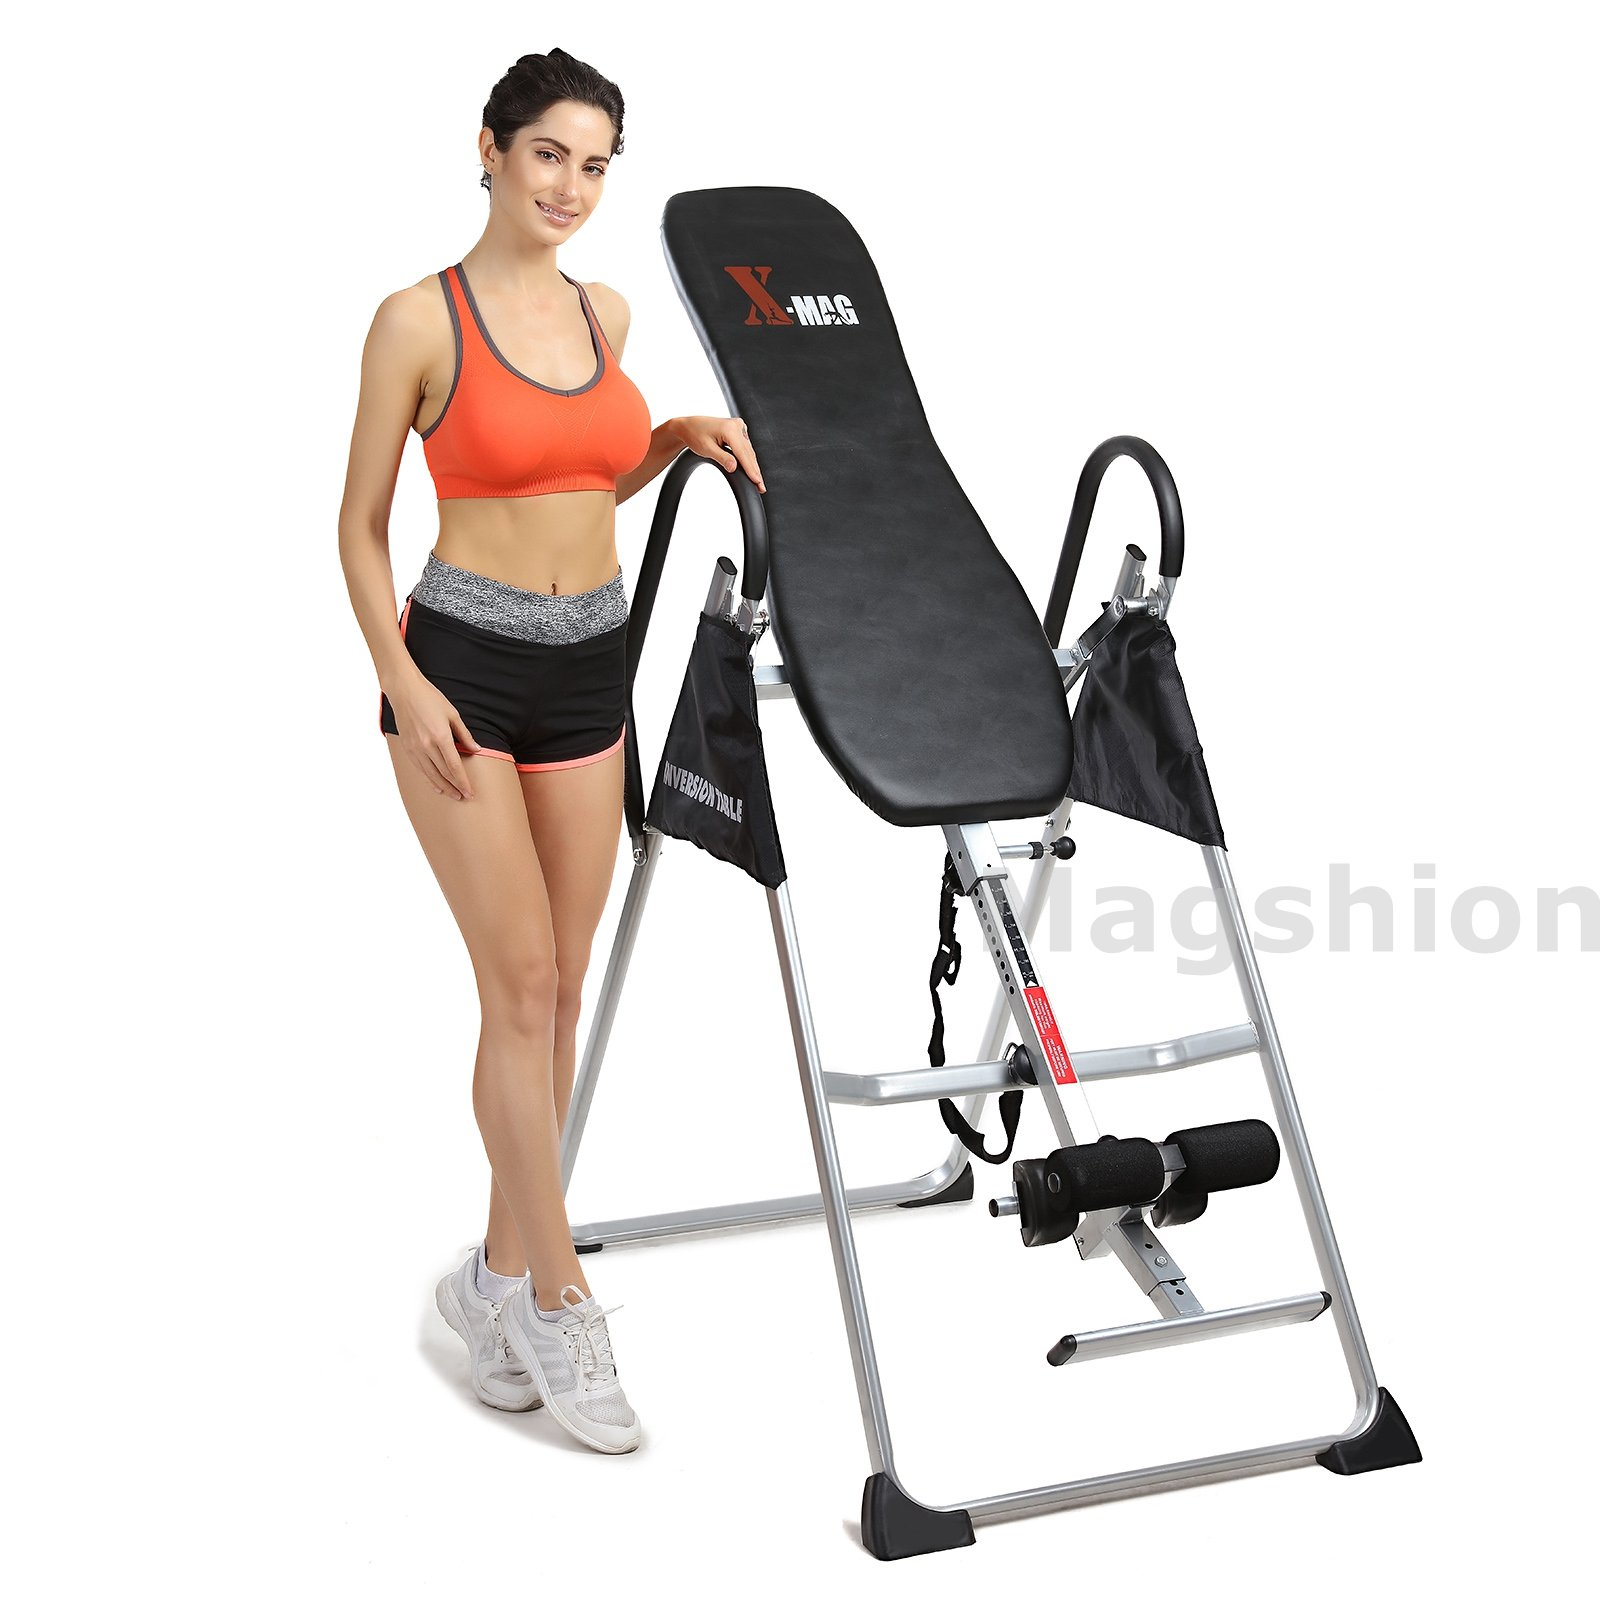 X-MAG Gravity Inversion Therapy Table Deluxe Adjustable Table With Comfort Foam Black